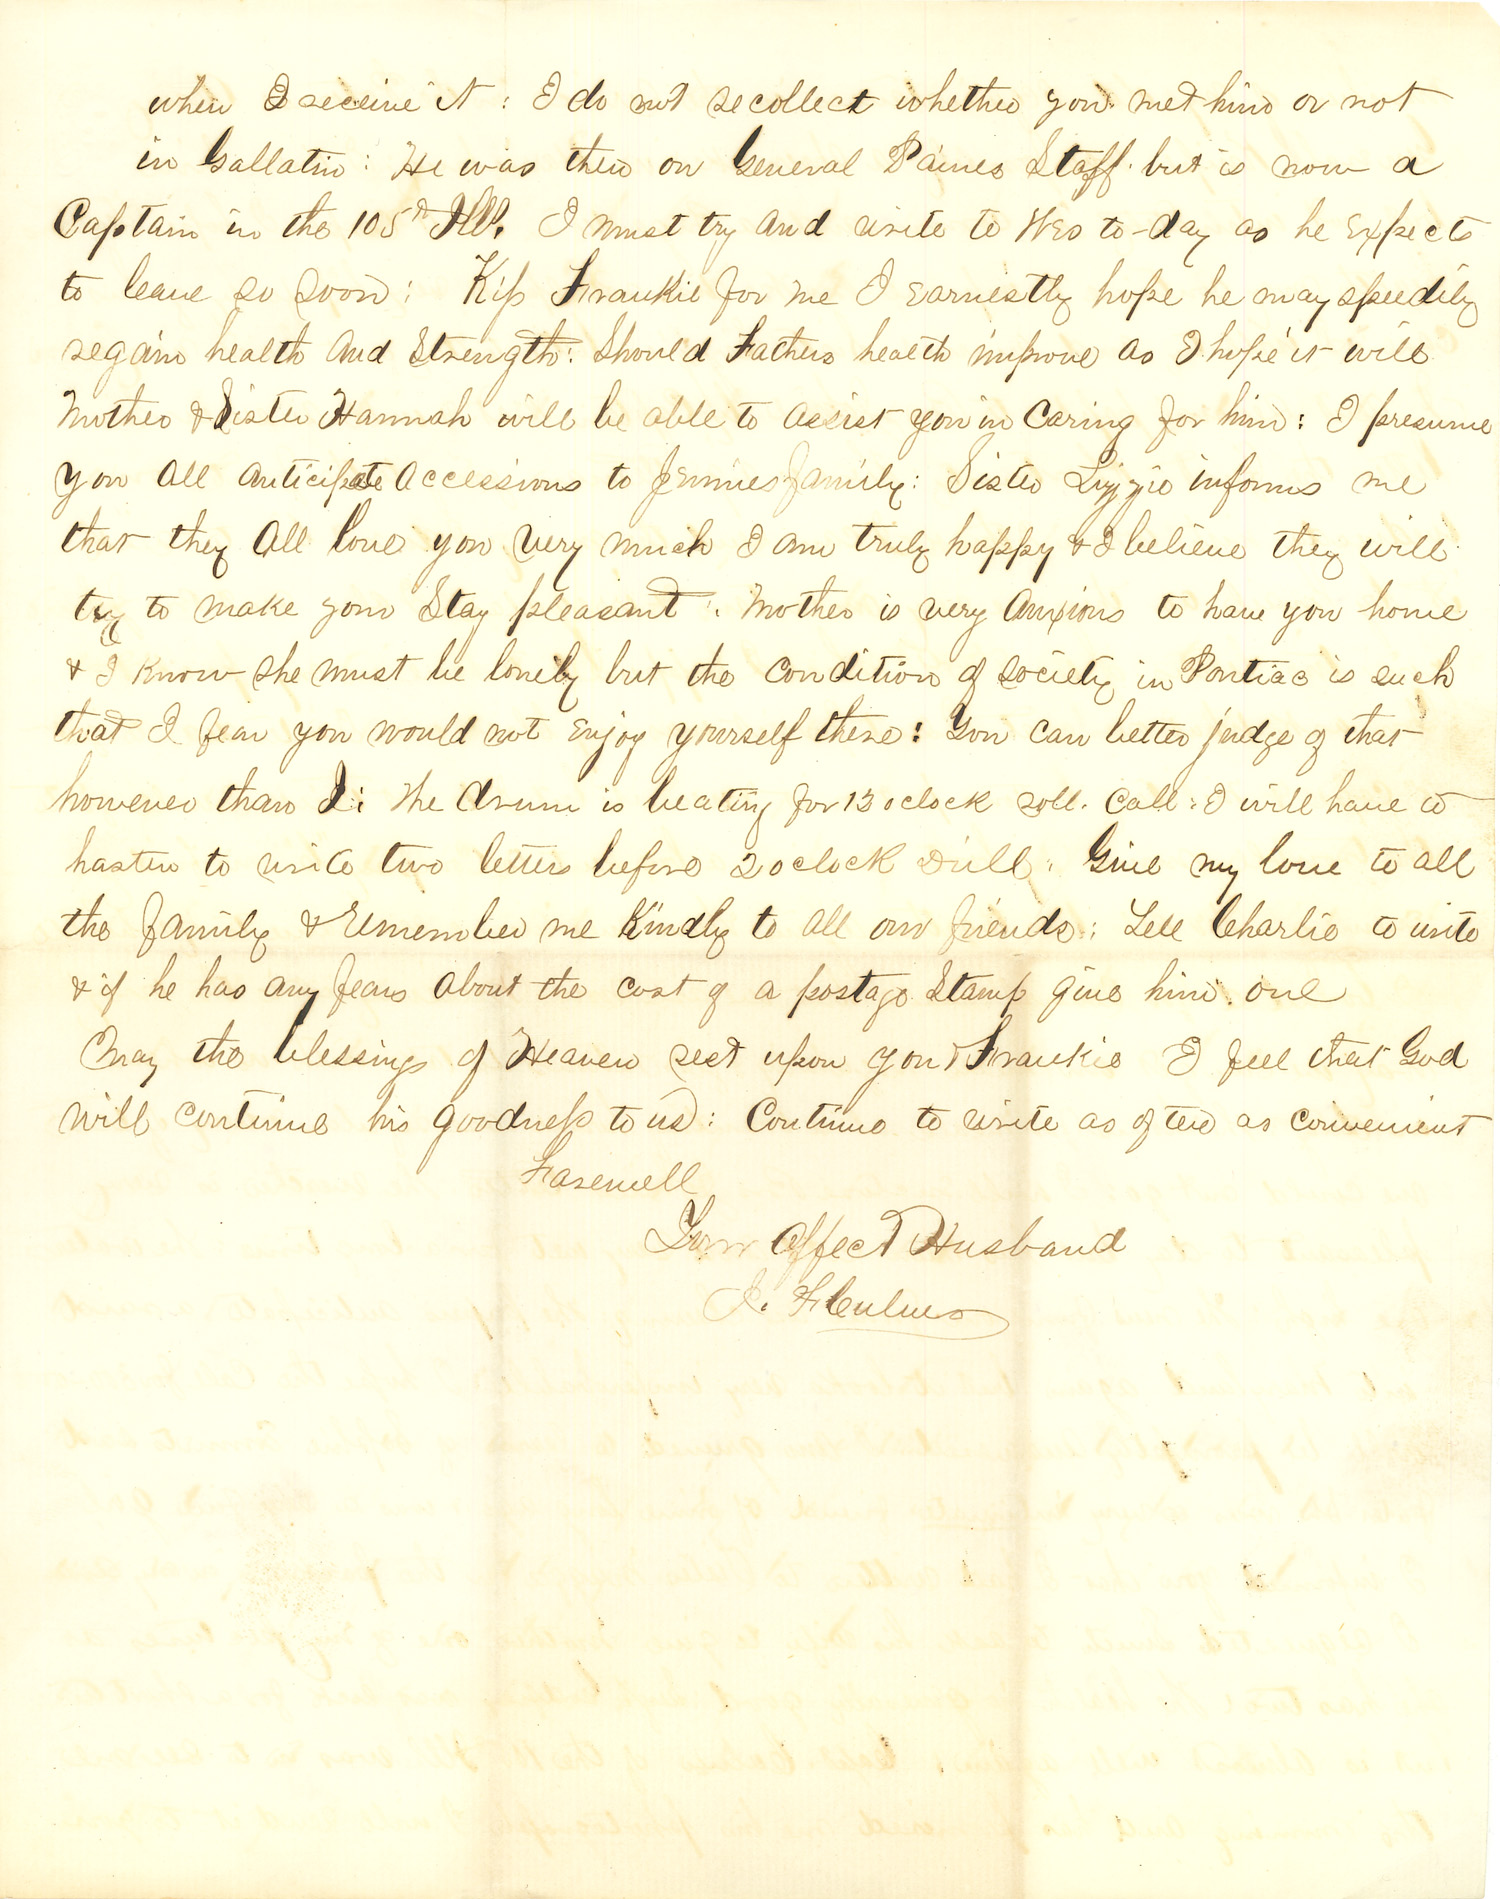 Joseph Culver Letter, October 19, 1863, Page 3